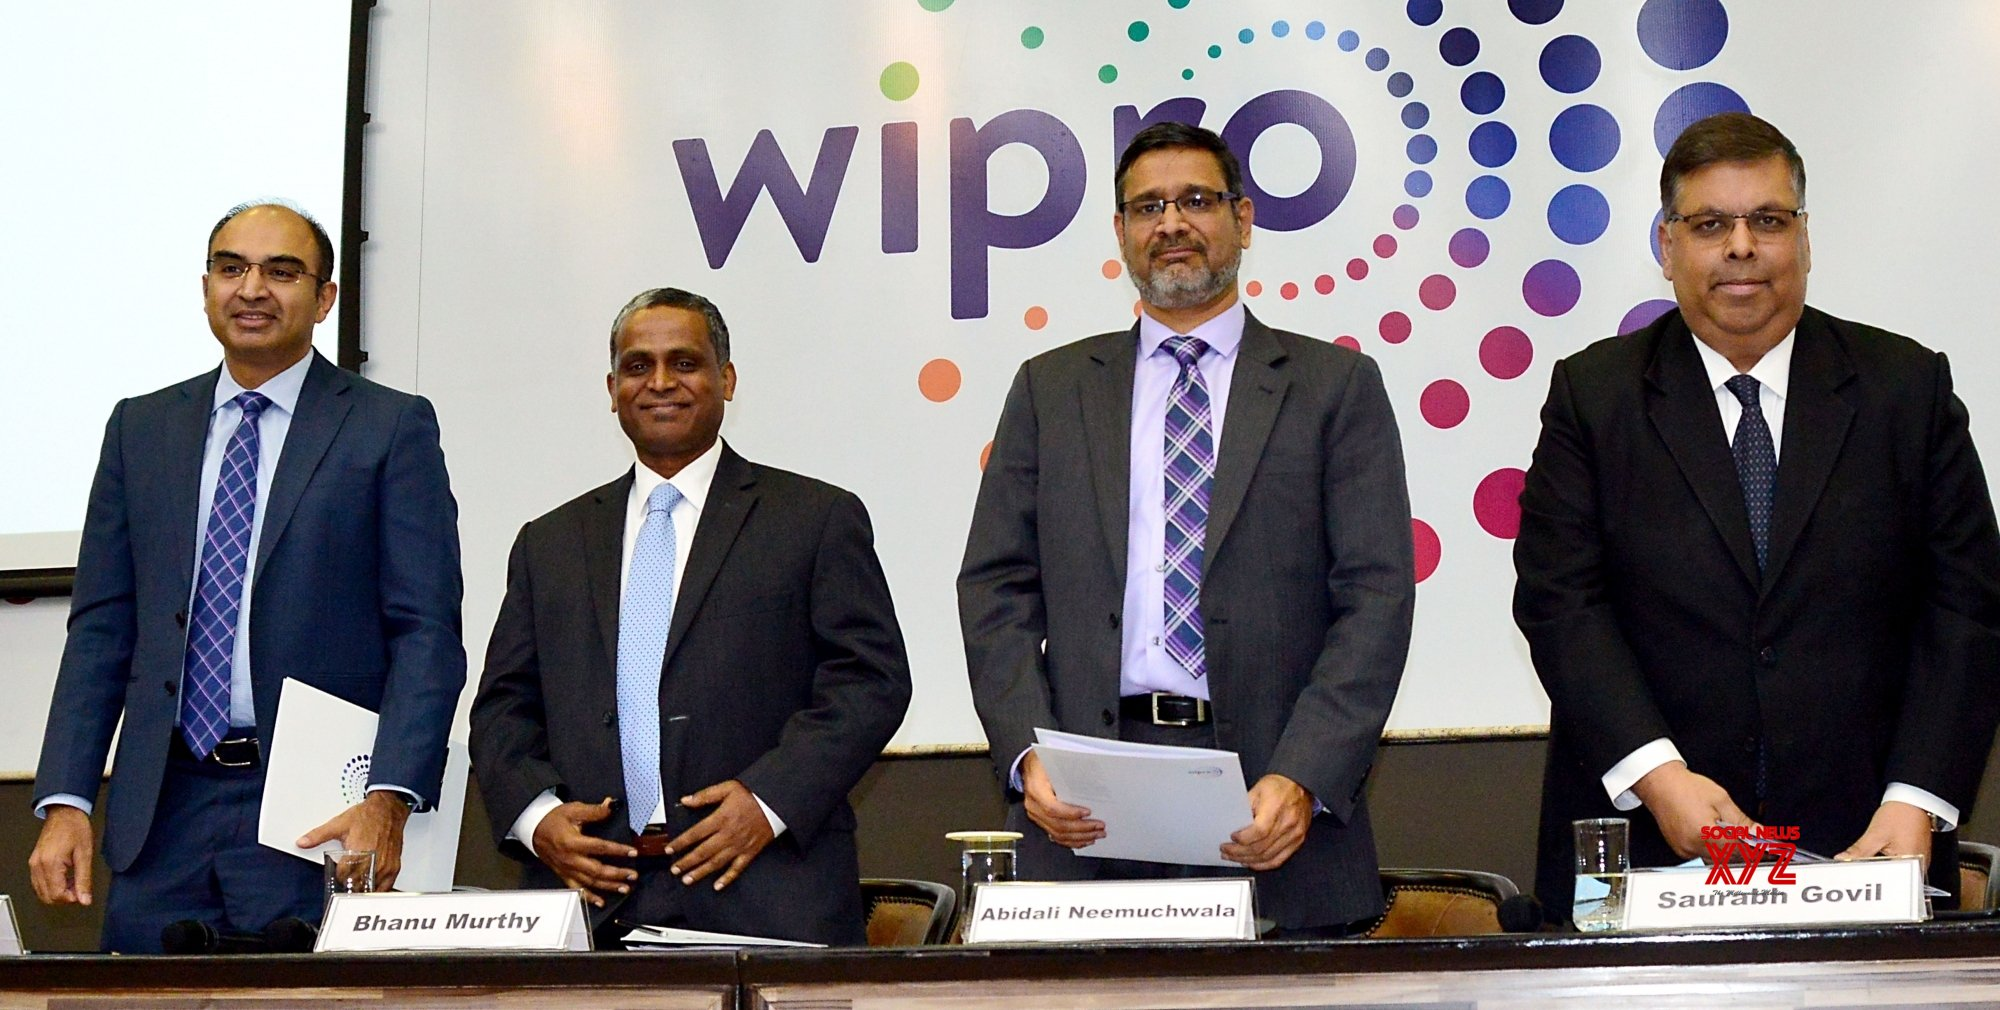 Wipro to buy back 323 mn shares for Rs 10,500 cr